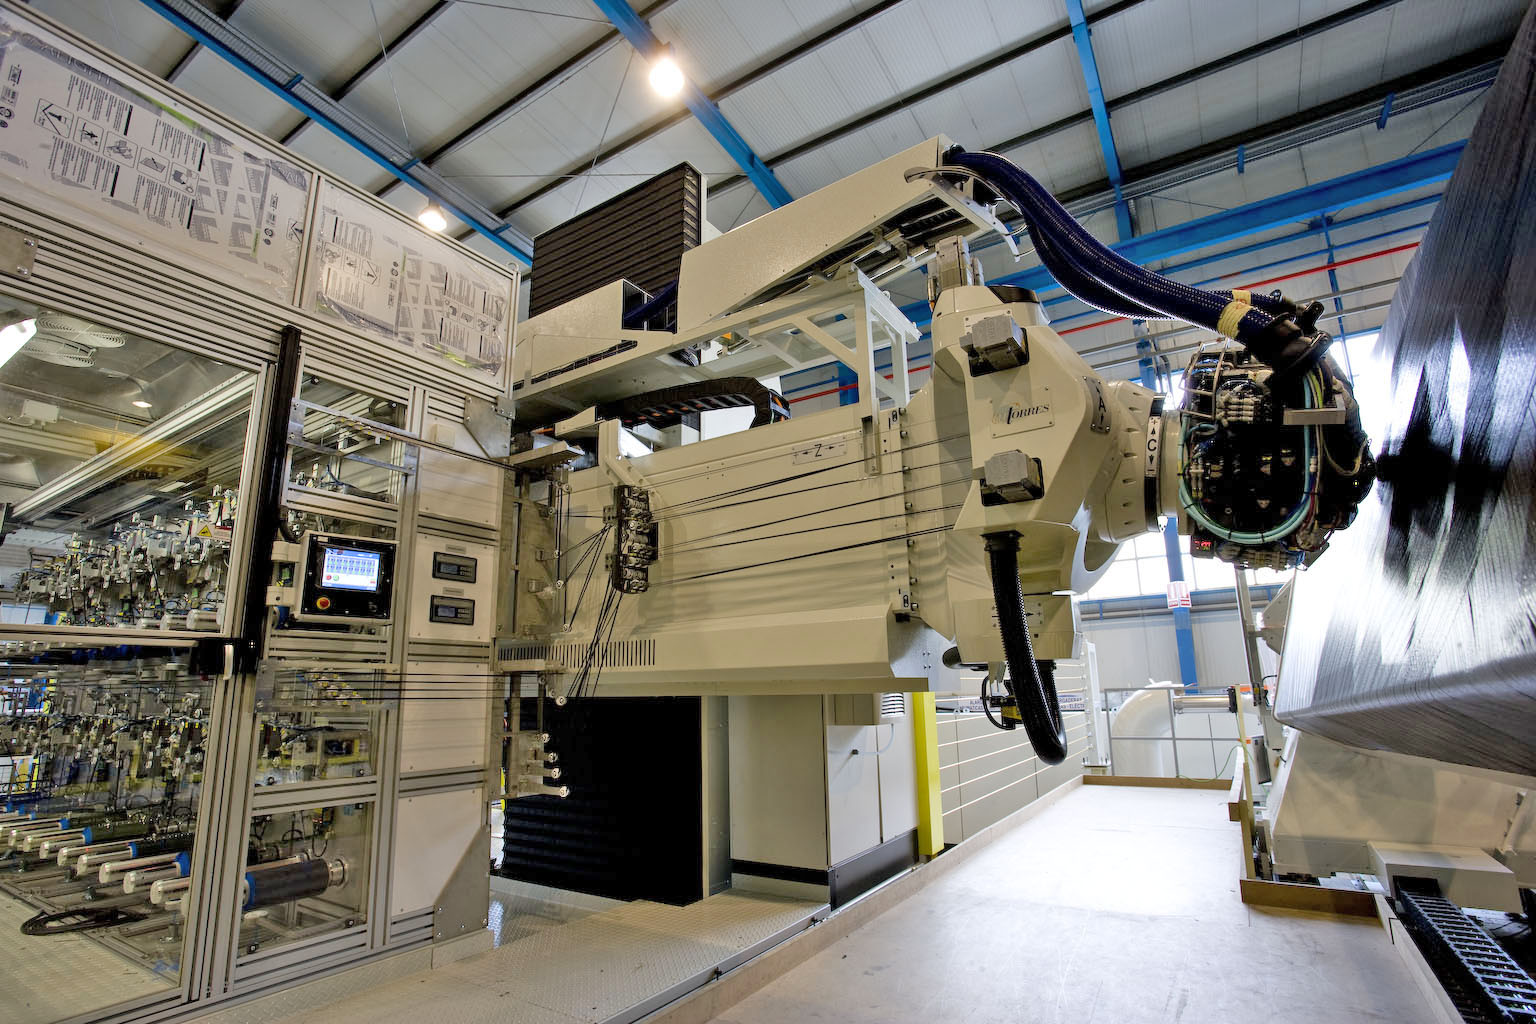 The fibre placement machine at GKN's Severnside factory